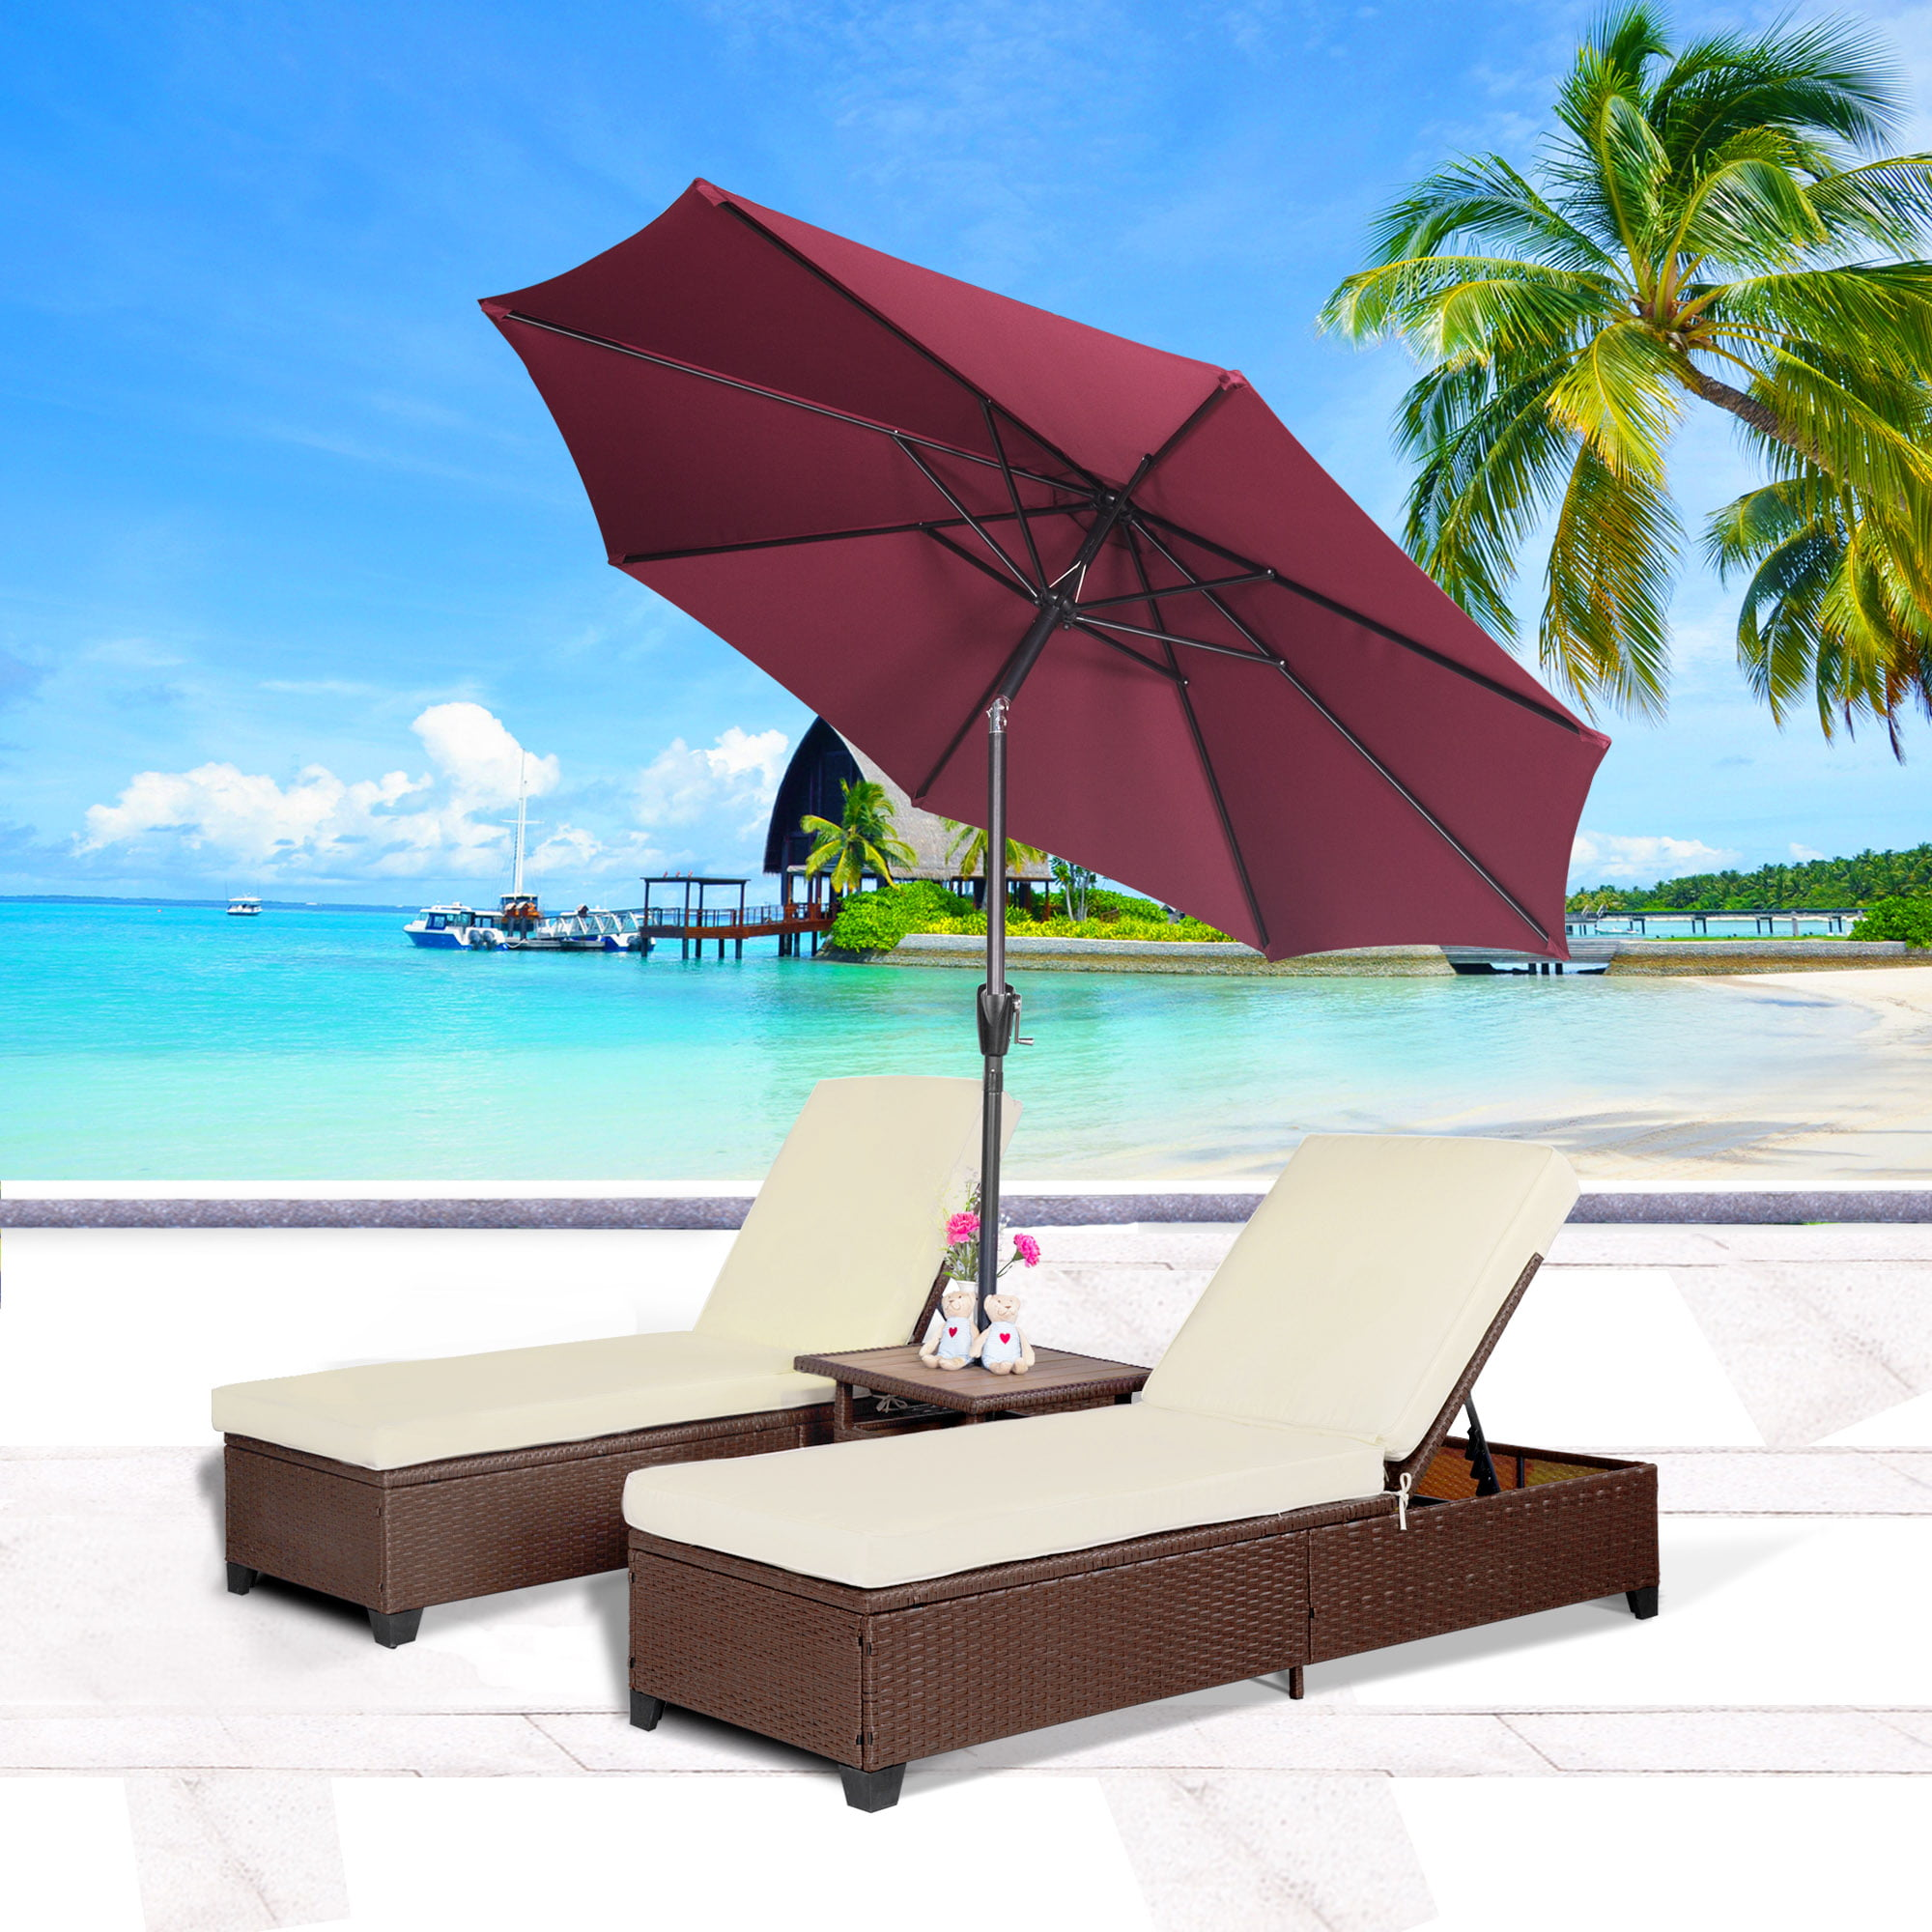 Cloud Mountain 4PC Outdoor Rattan Chaise Lounge Chair with 9' Umbrella Patio PE Wicker Rattan Furniture... by Cloud Mountain